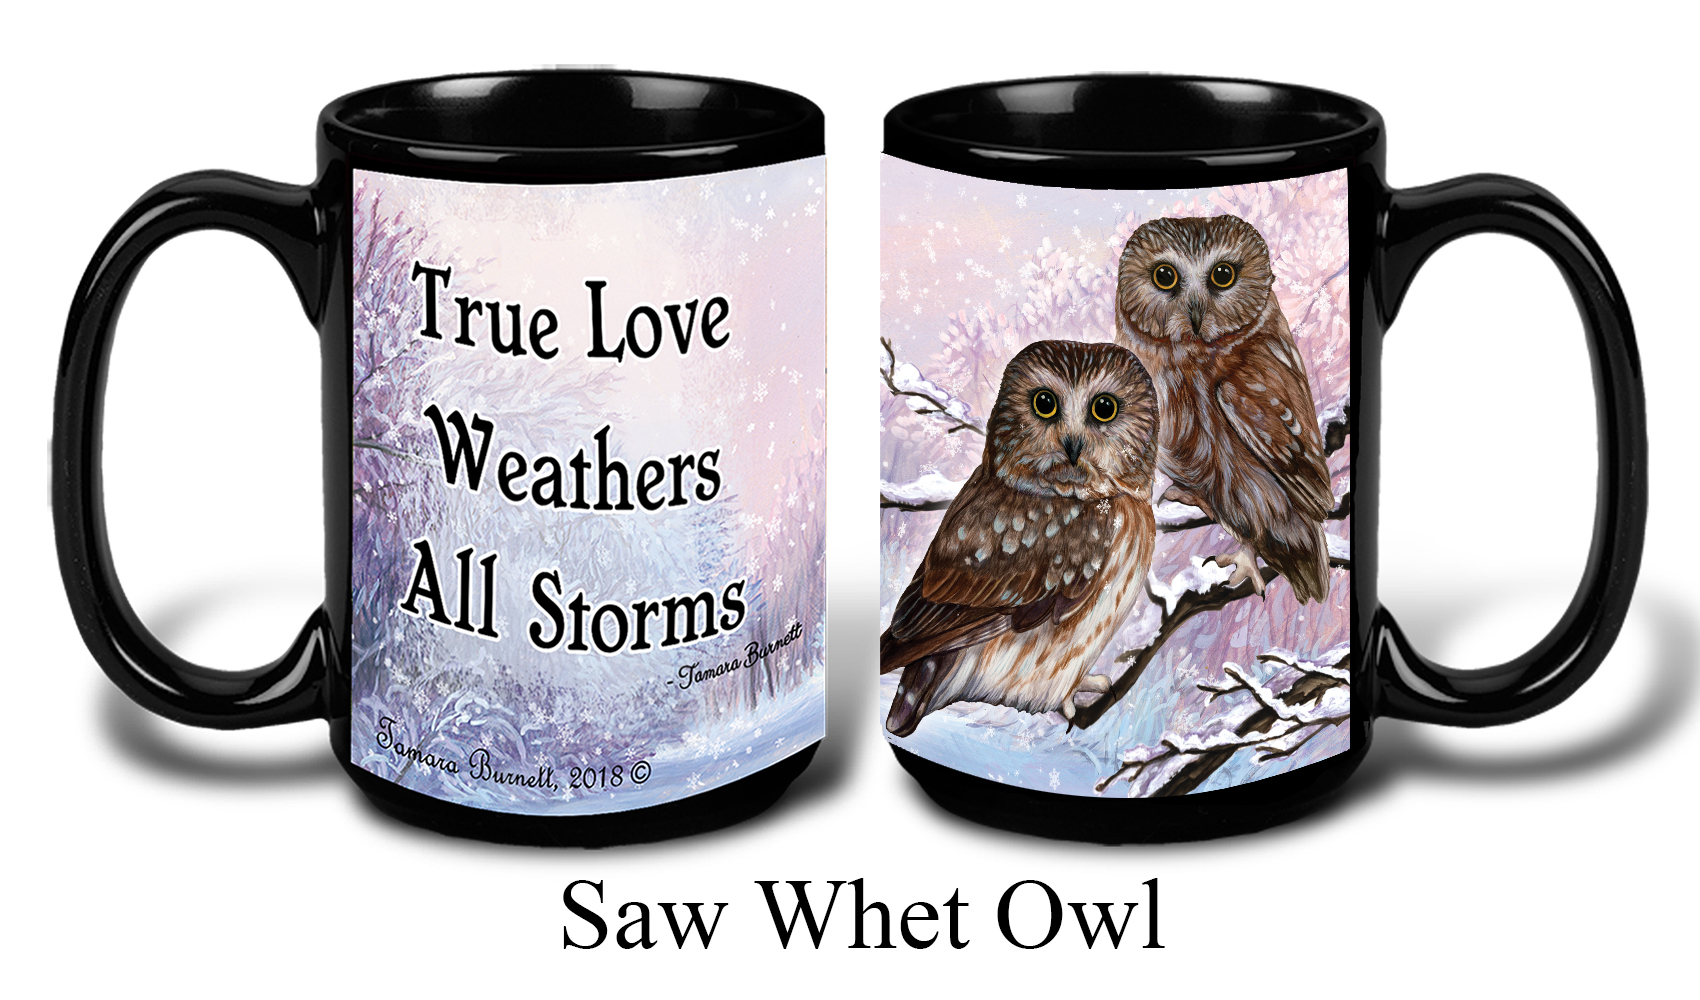 Saw Whet Owl Winter Mugs image